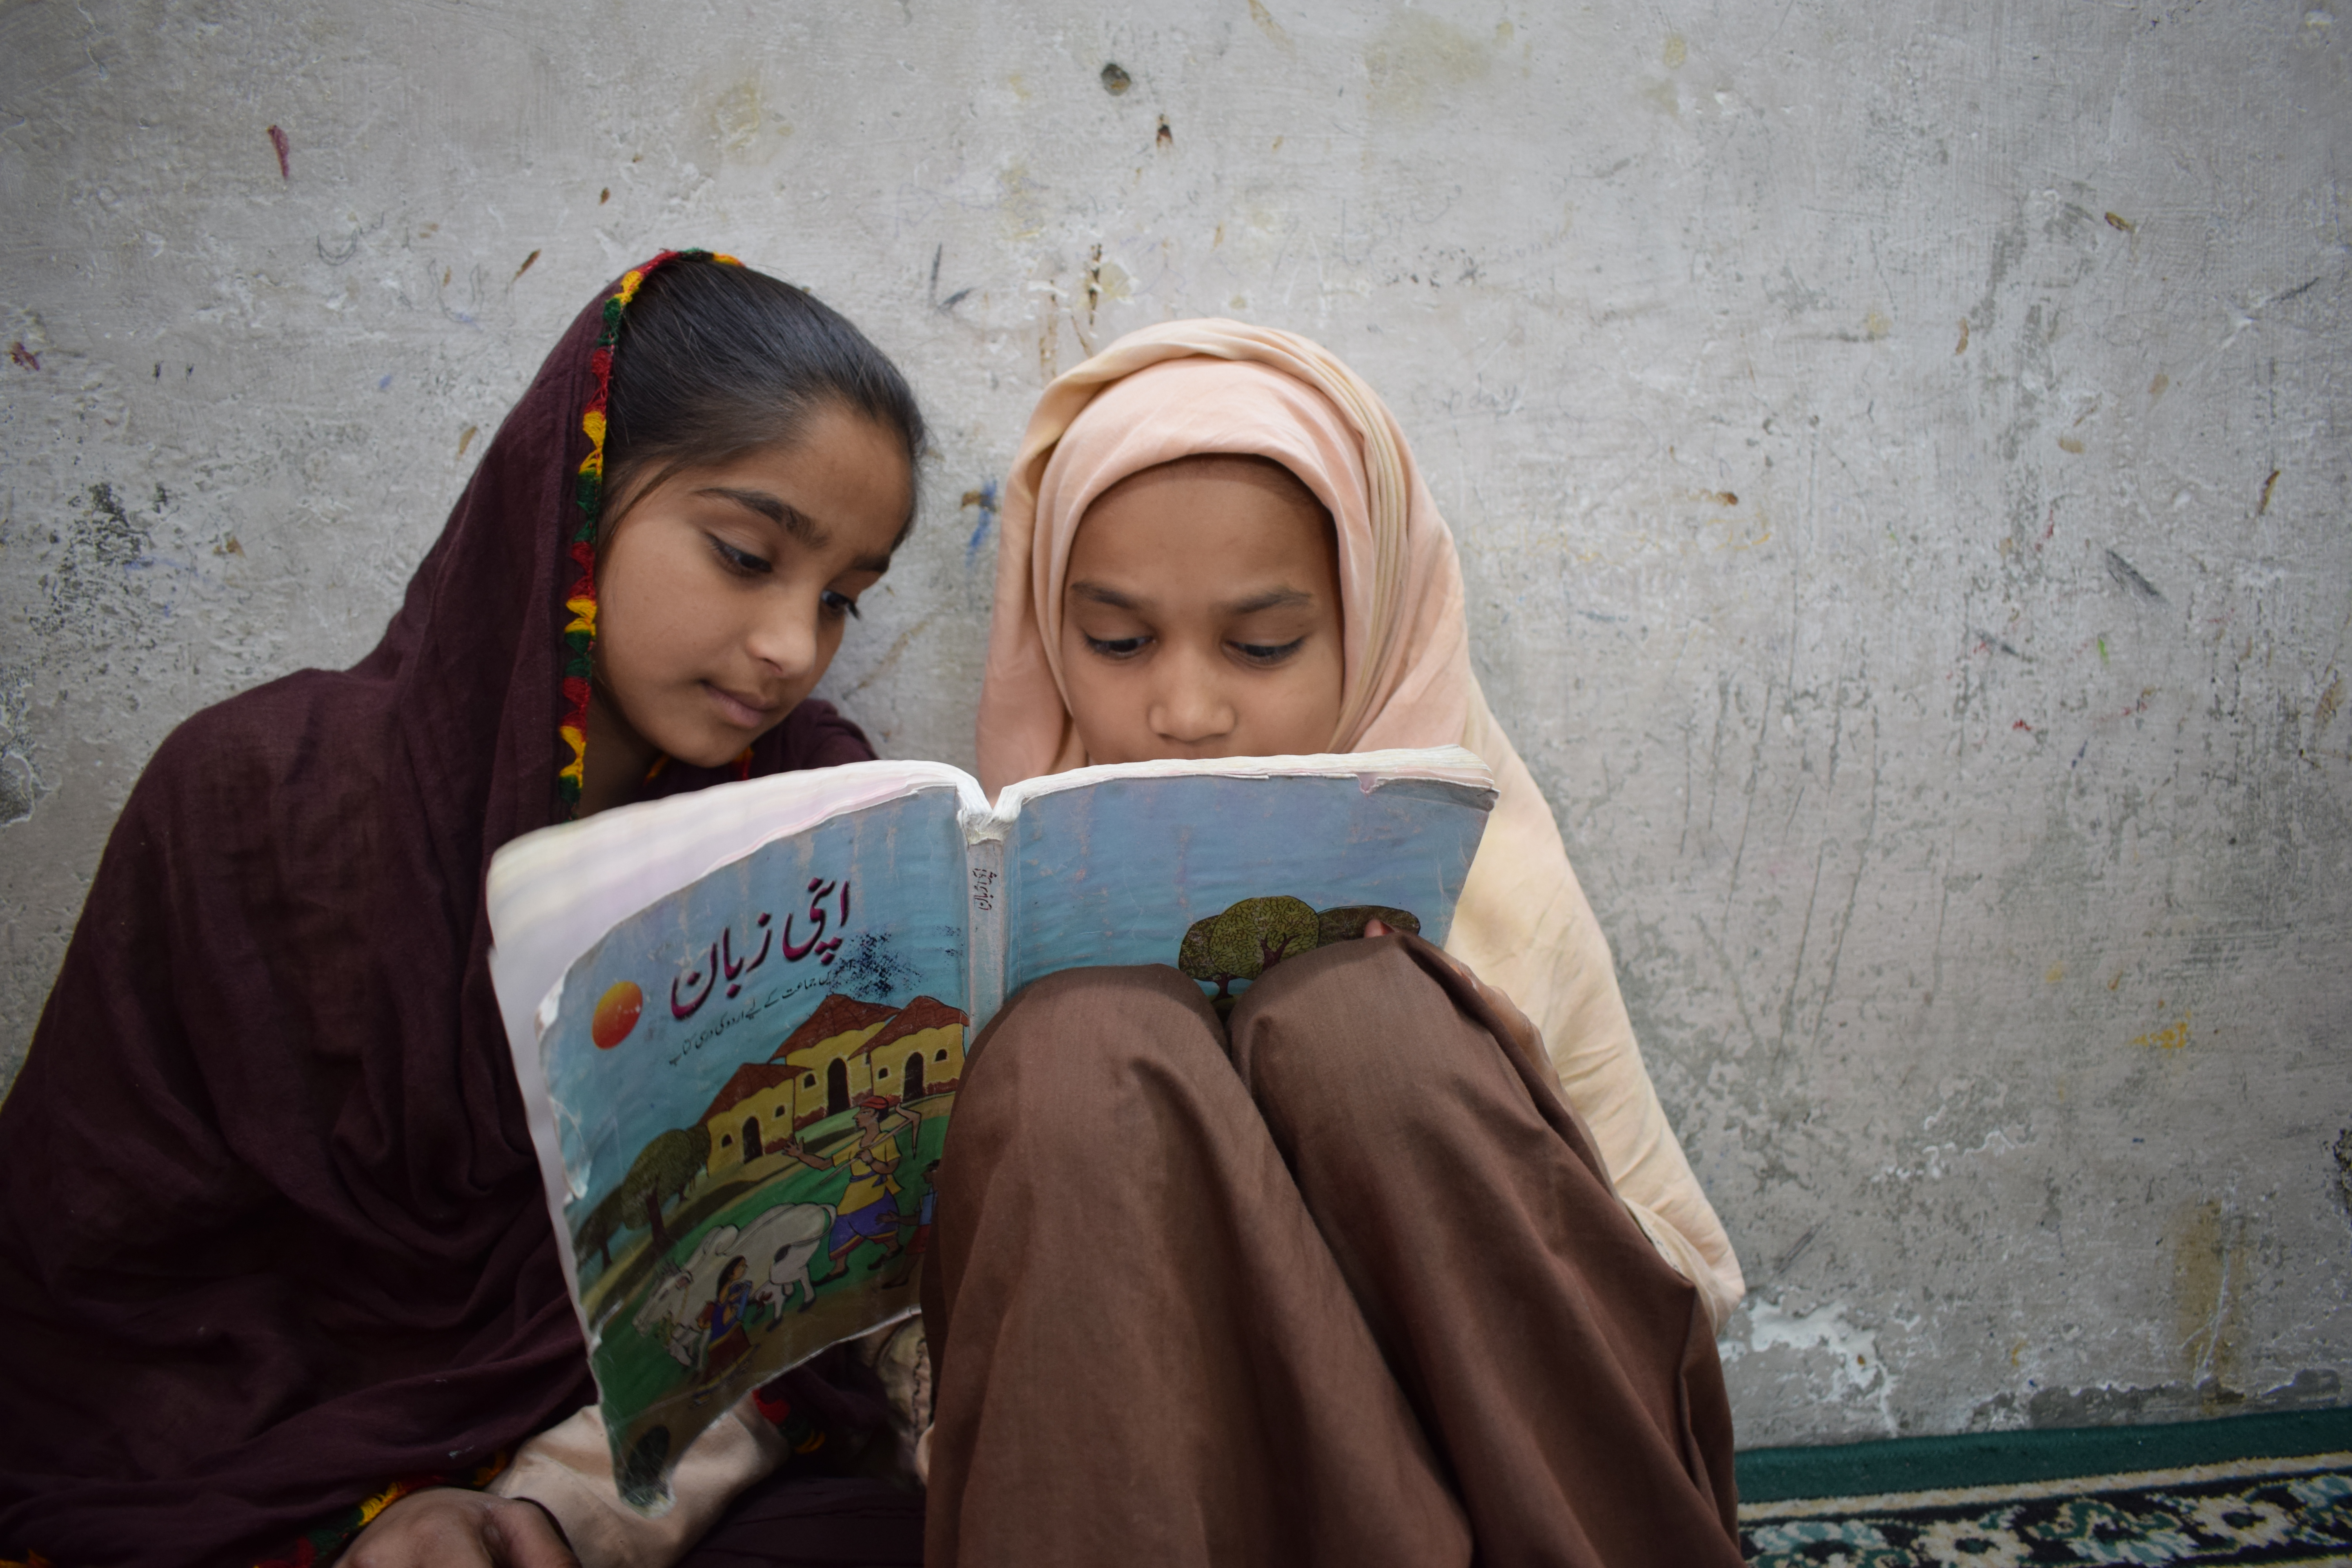 Girls Inside The Madrassa: Confinement Under The Burden Of Morality